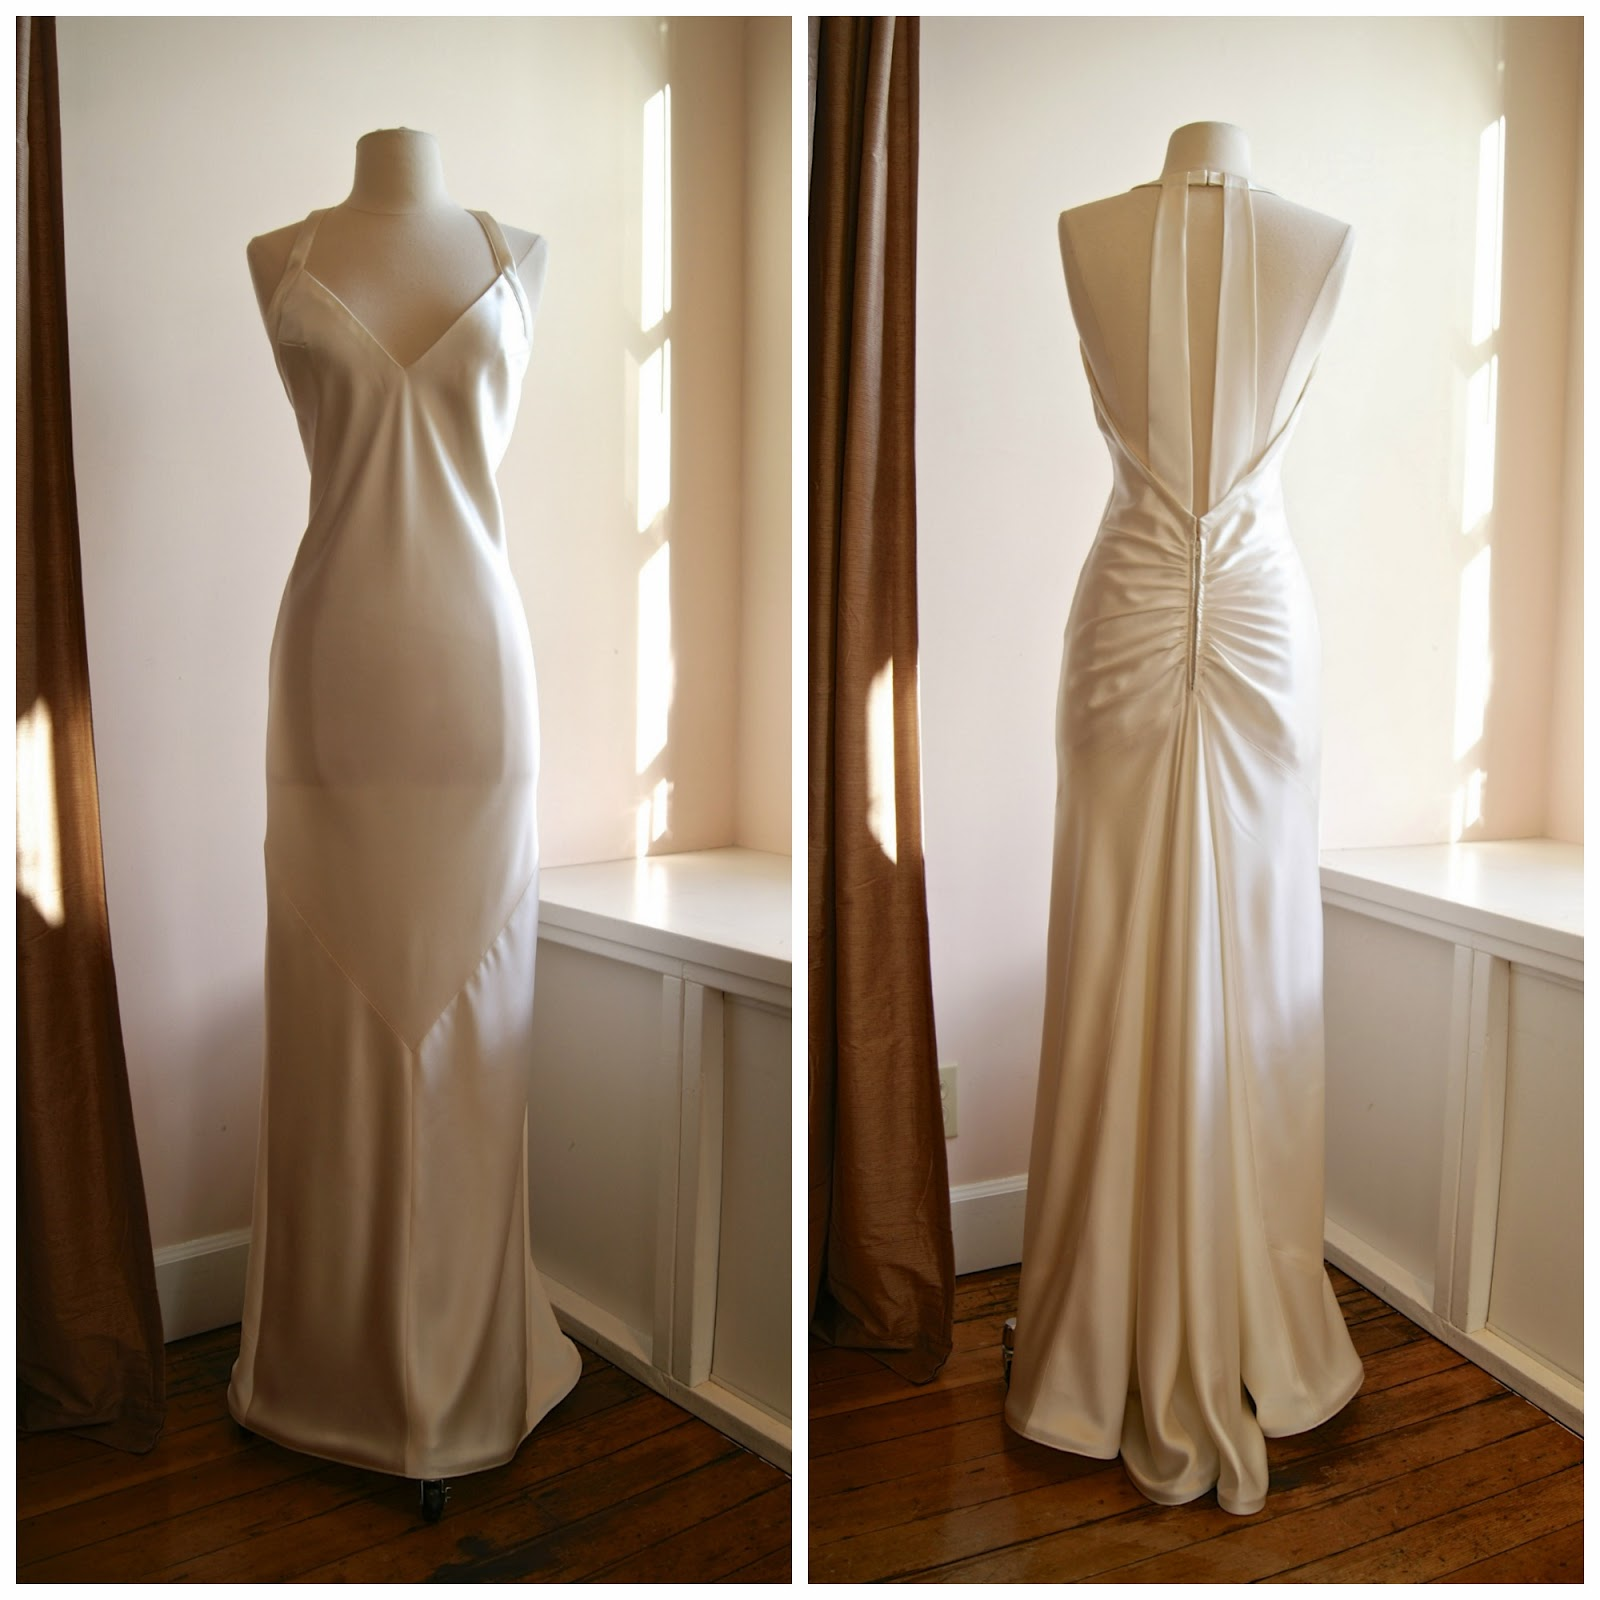 03 wedding dress I m so excited about this custom made s reproduction silk crepe bias cut wedding gown Made specially for us out of an old s dress pattern by a